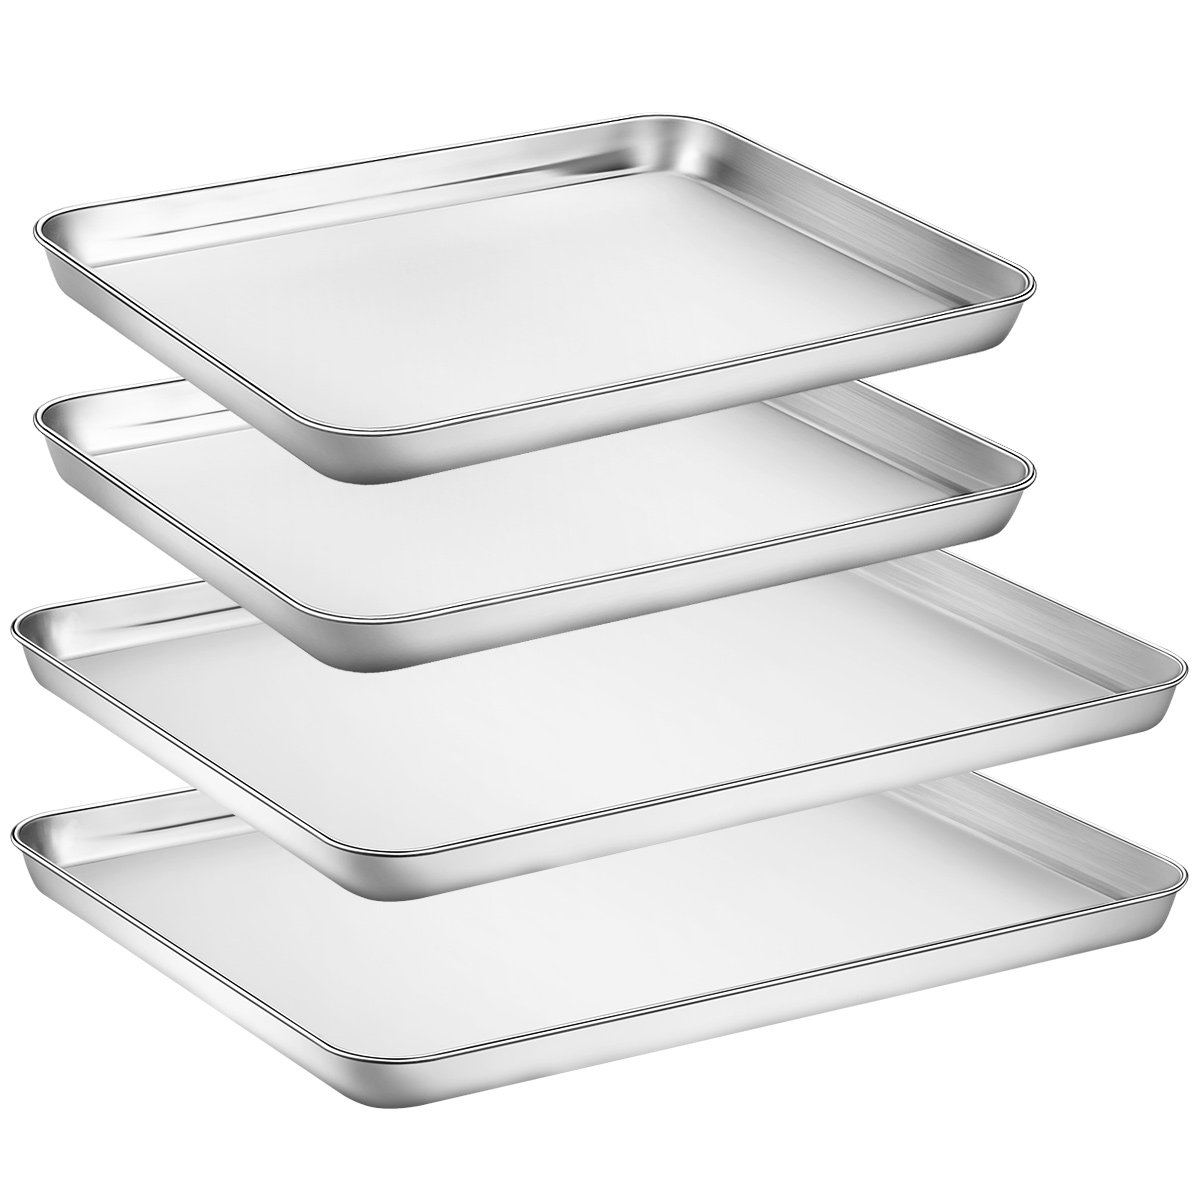 Large Baking Sheets Sets, HKJ Chef Baking Pans For Oven & Stainless Steel Cookie Sheets 4 Pieces & Toaster Oven Tray Pans Non Toxic & Healthy,Superior Mirror & Easy Clean